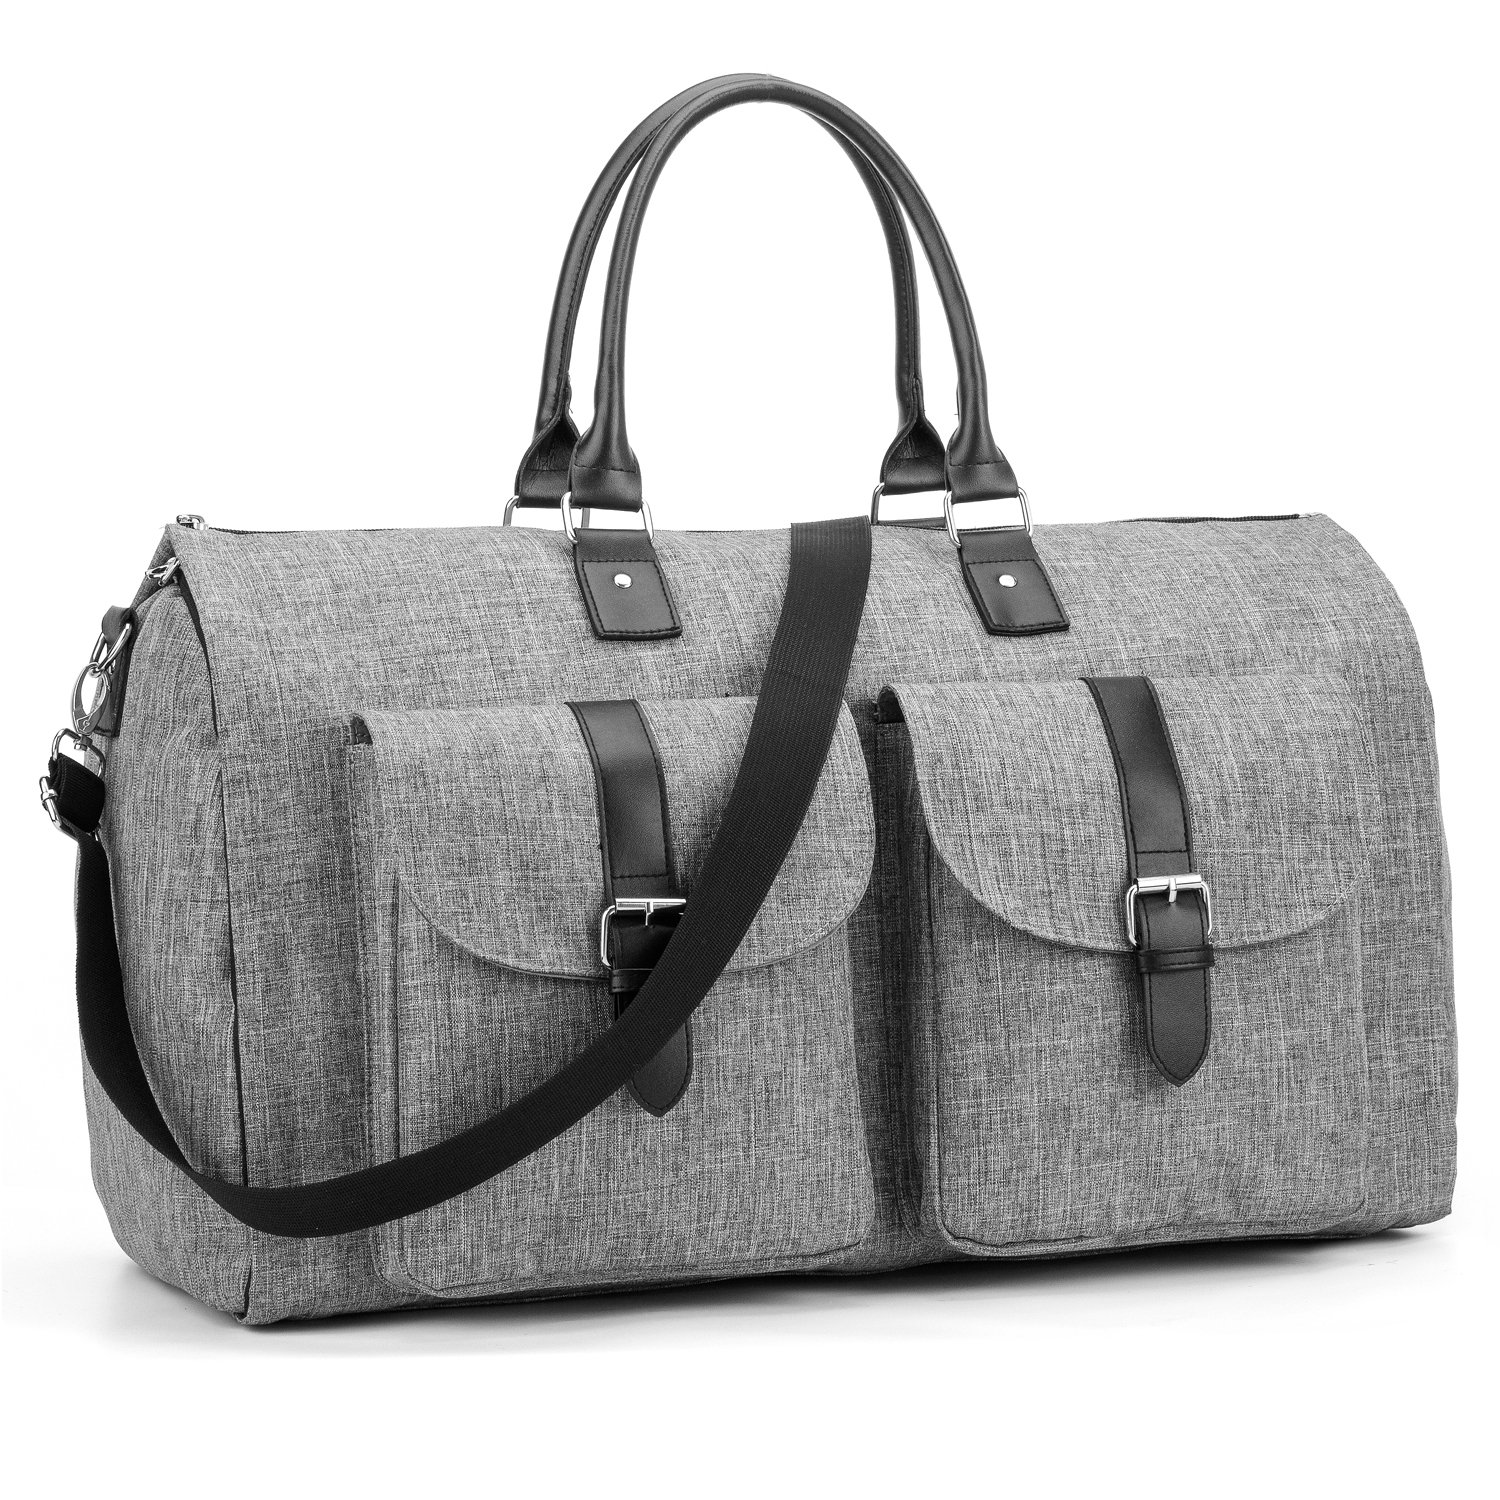 Amzbag Expandable Travel Duffel Bag XXL Capacity Weekender Bag With Leather Handle Suit Carry On Garment Bag for Travel/Business Trips (Grey)